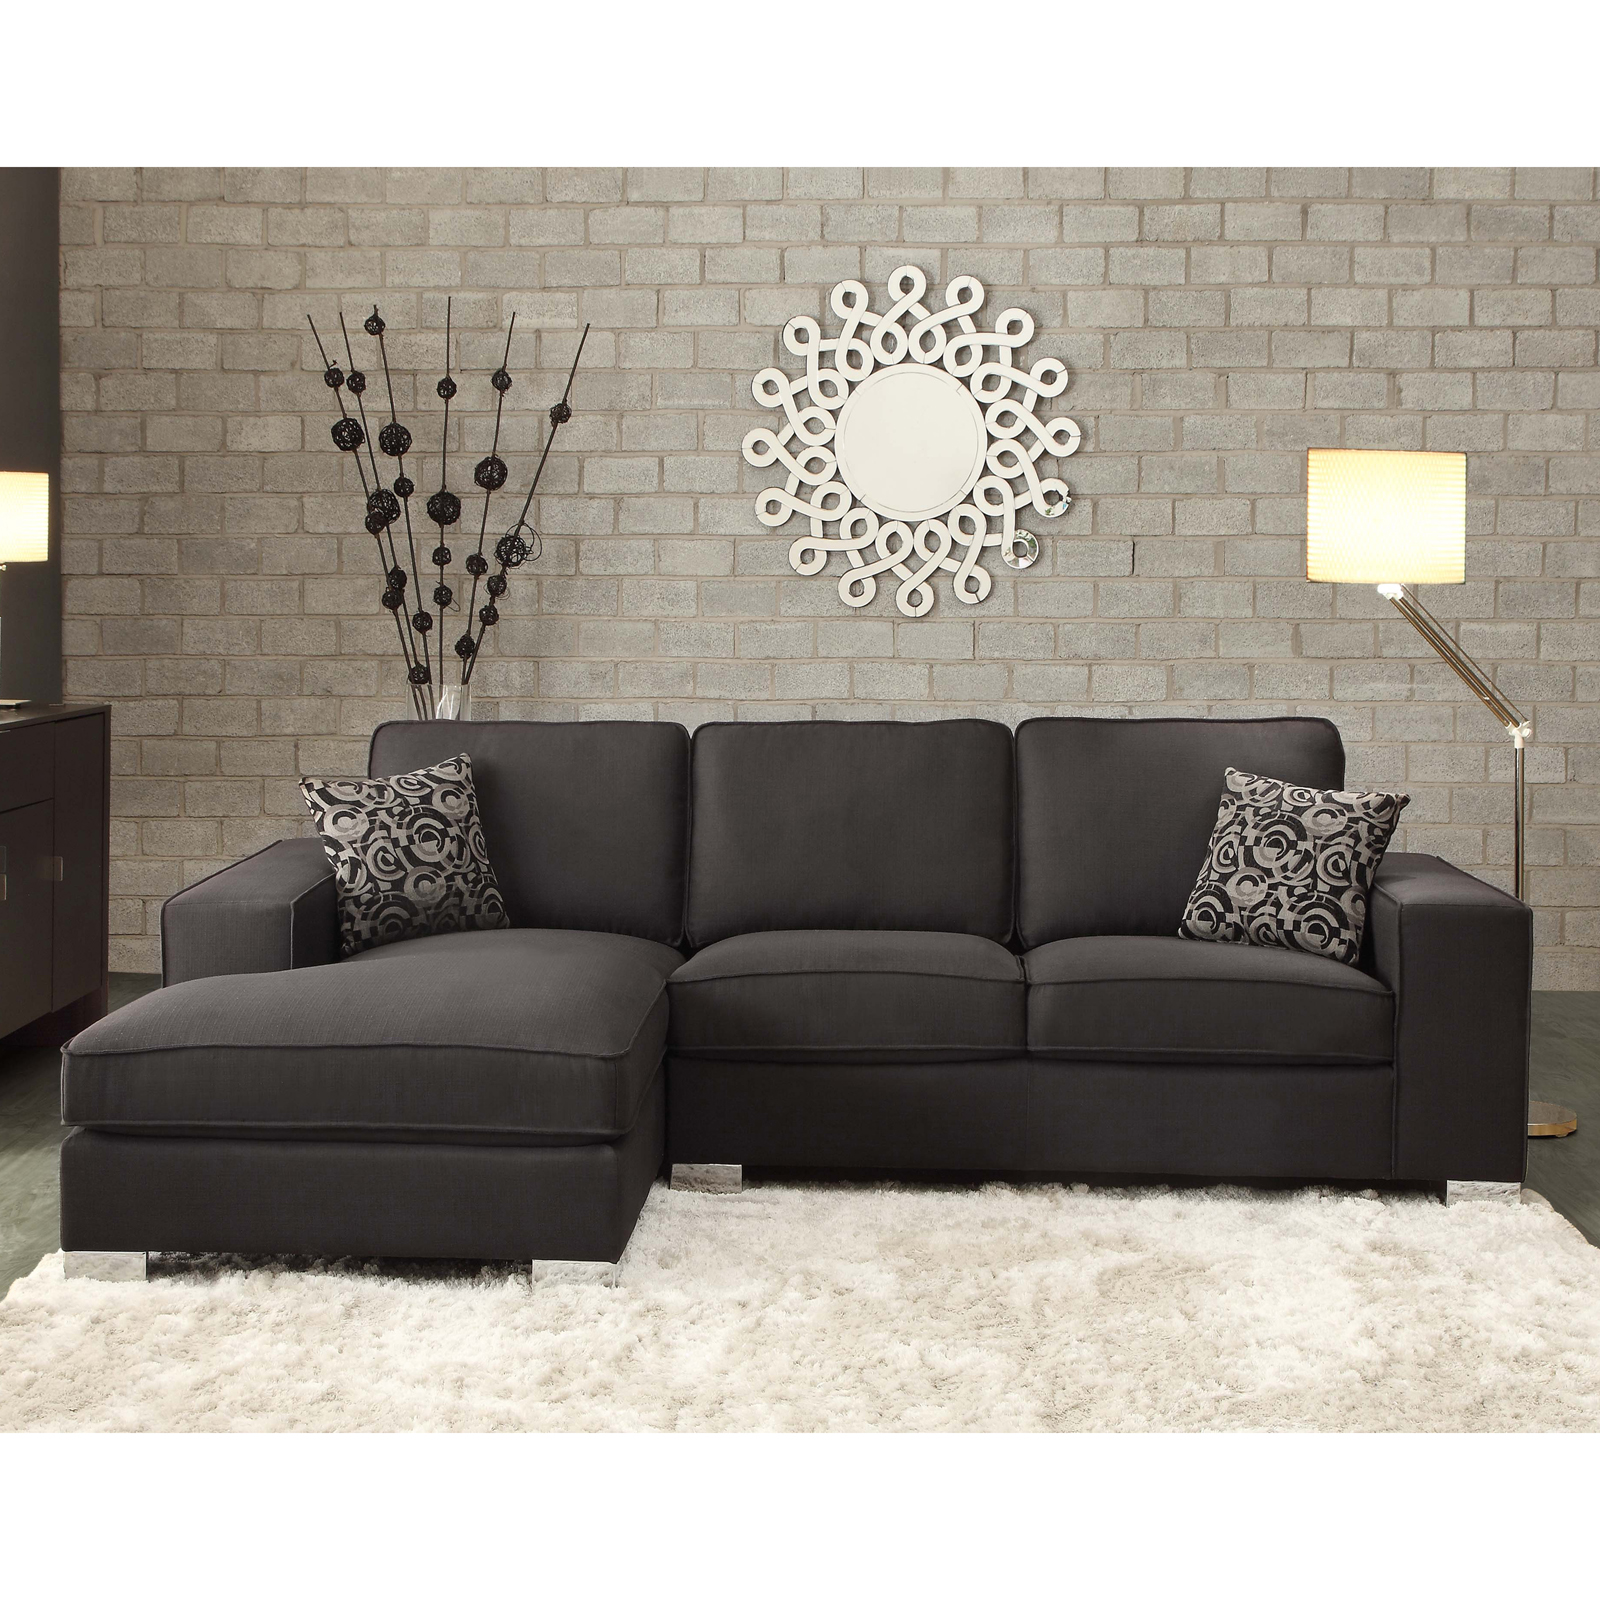 Oxford Creek Sotelo Contemporary Sectional Sofa Home Furniture Living Room Furniture